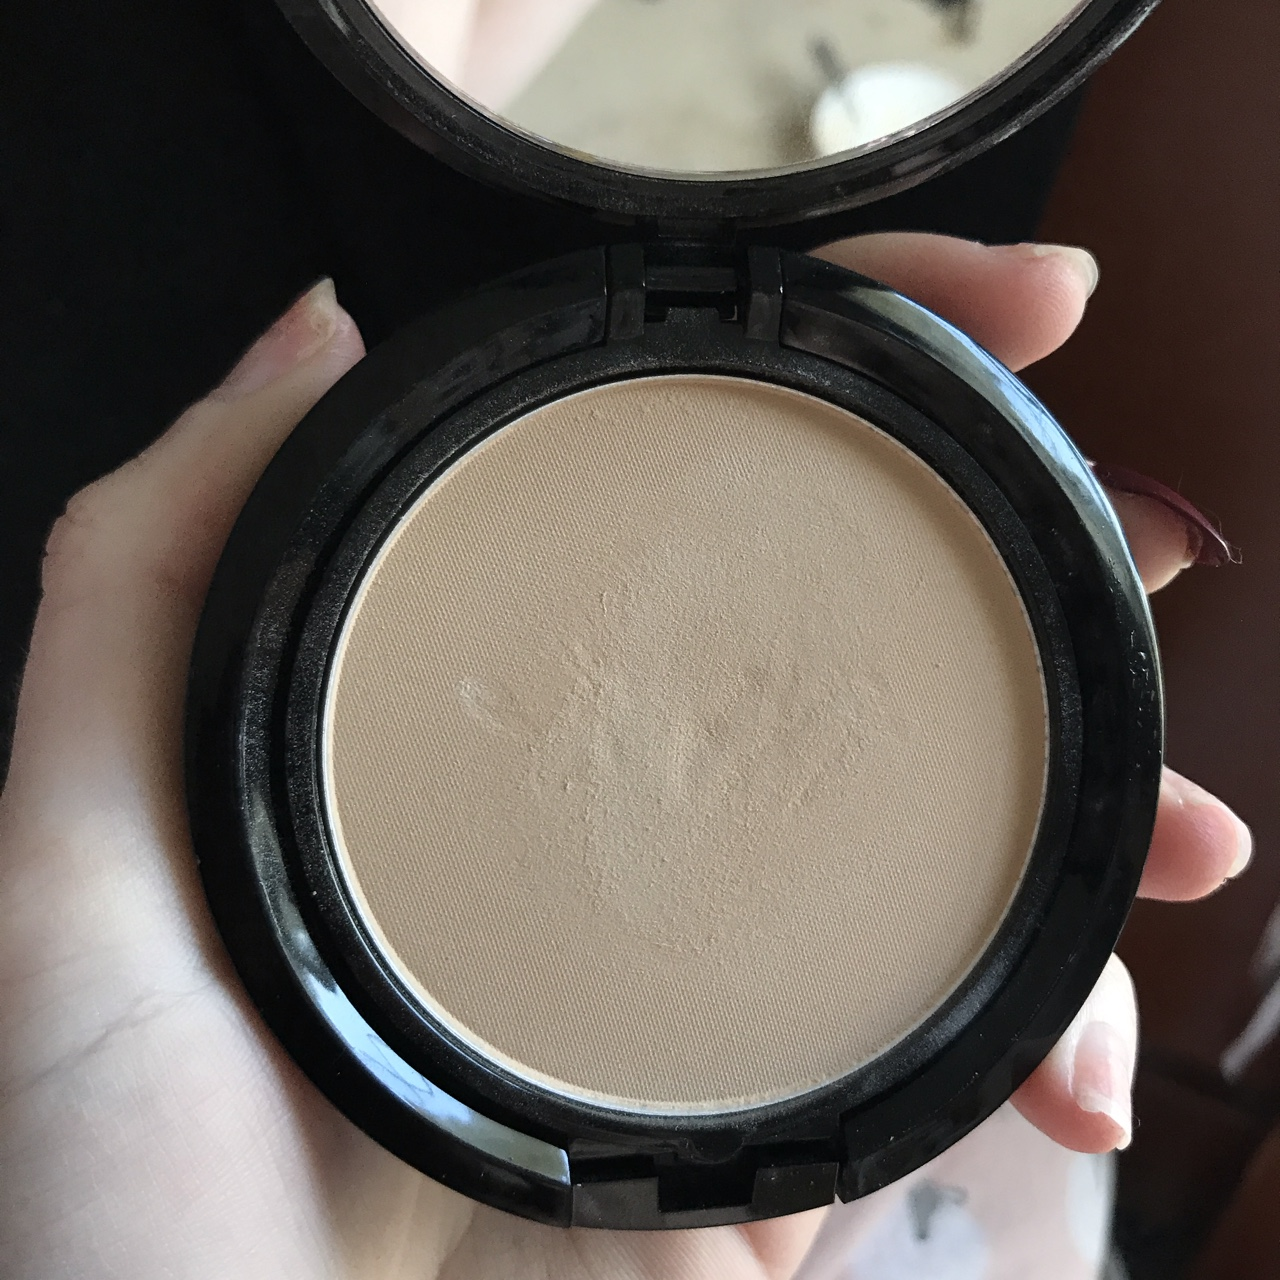 Nyx Stay Matte But Not Flat Powder Foundation Ins 02 Depop